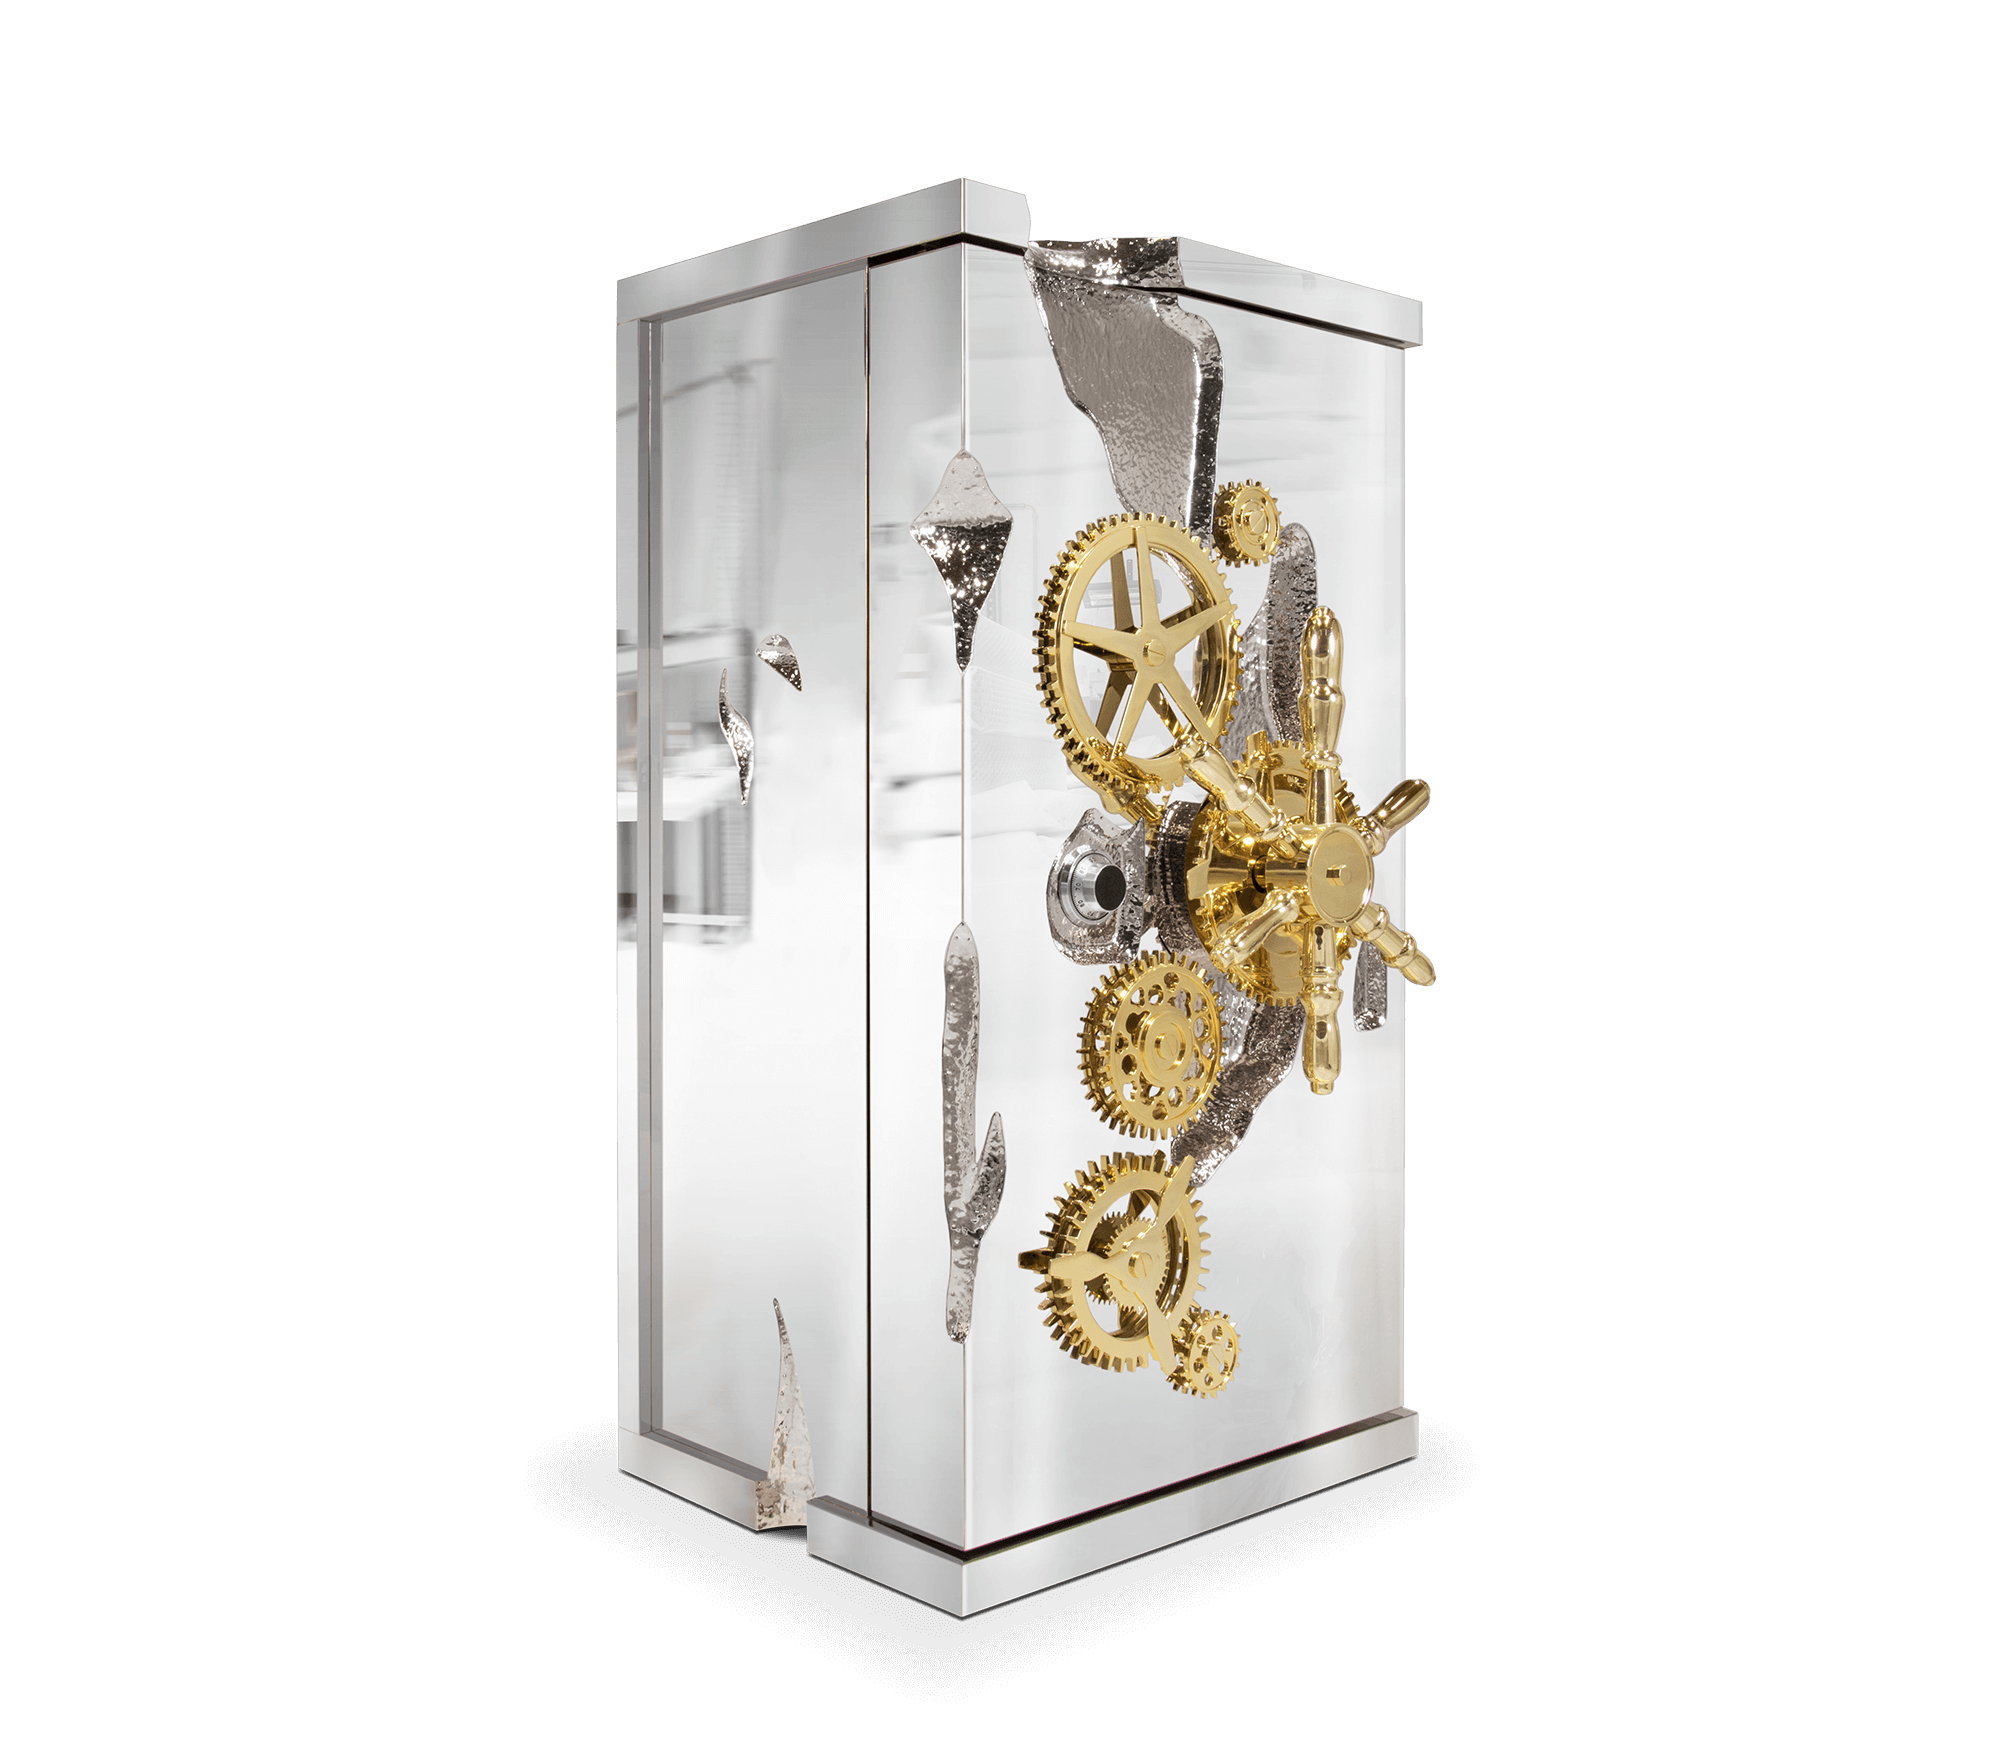 Millionaire Silver Luxury Safe by Boca do Lobo